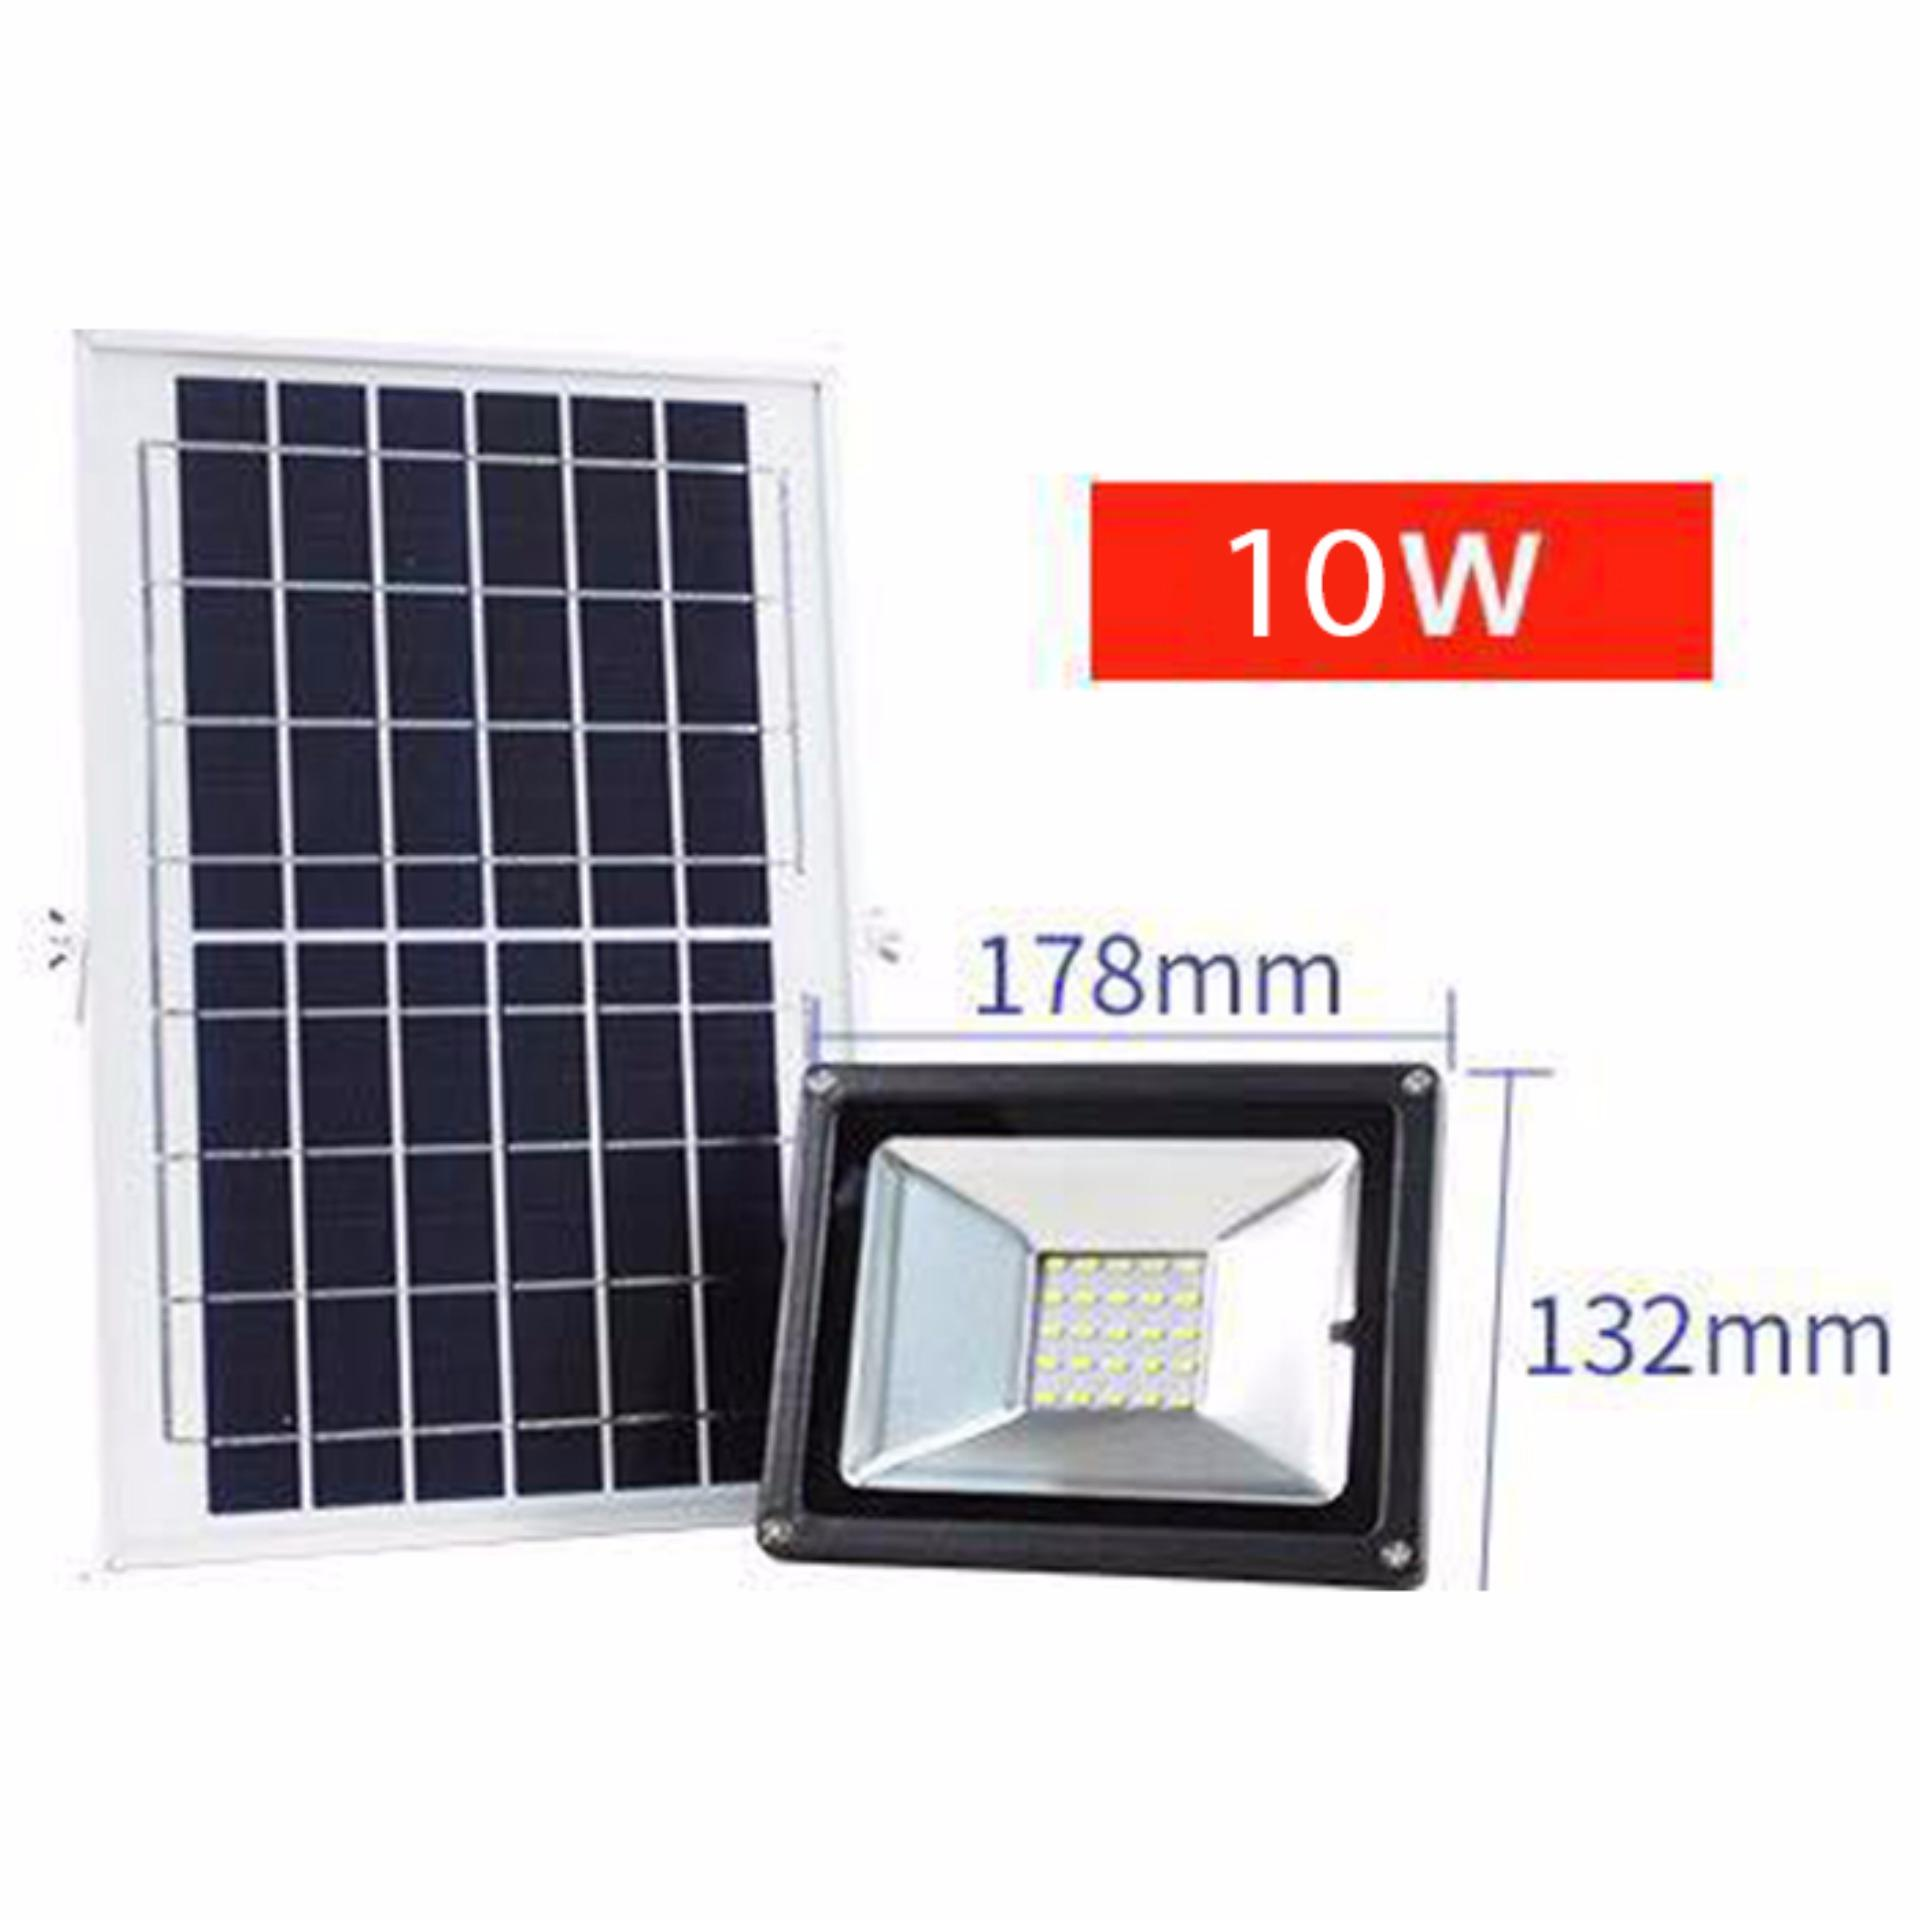 JD-1820 Solar Floodlights Private Street Lamp Without Electricity with High Quality Solar cells (10W)